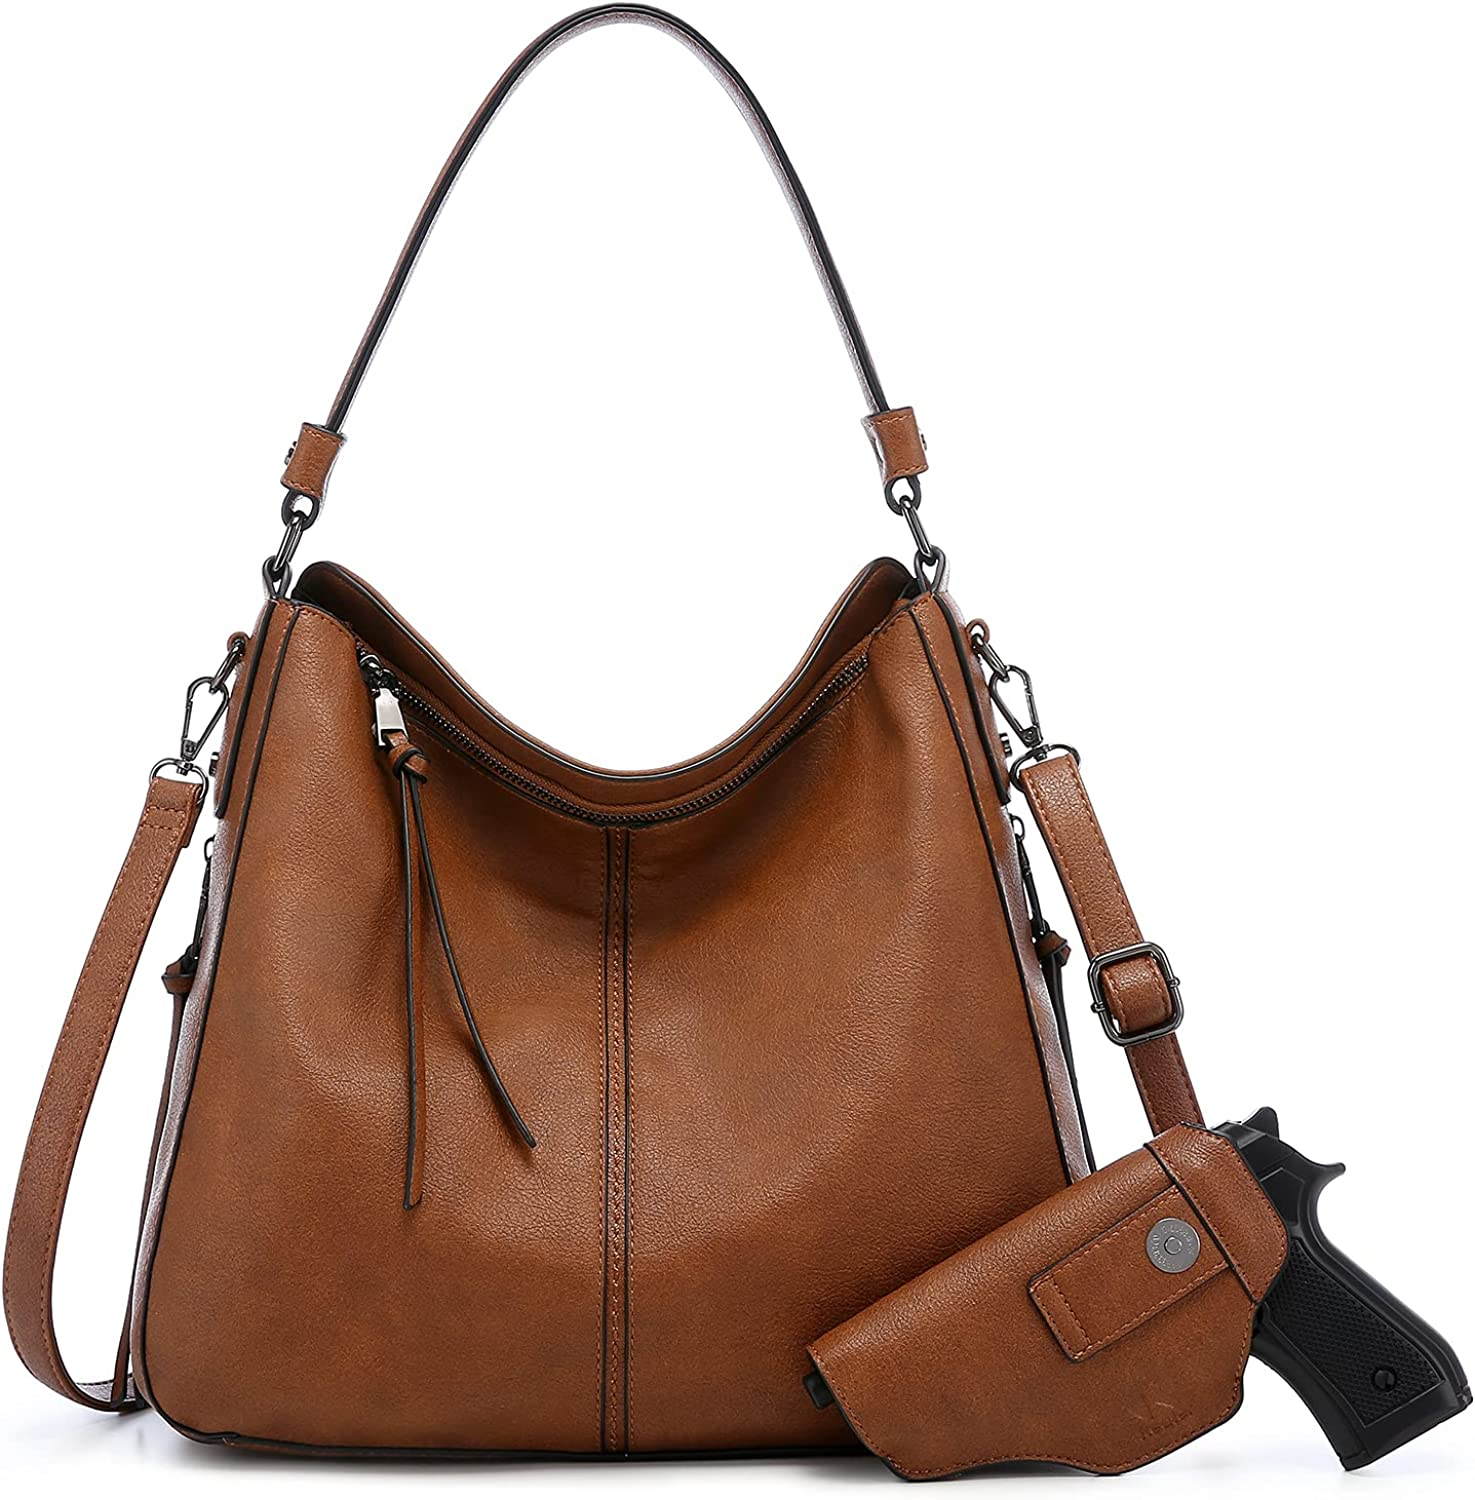 Realer High quality Hobo Bags for Women Faux Leather and Larg Purses Handbags OFFicial